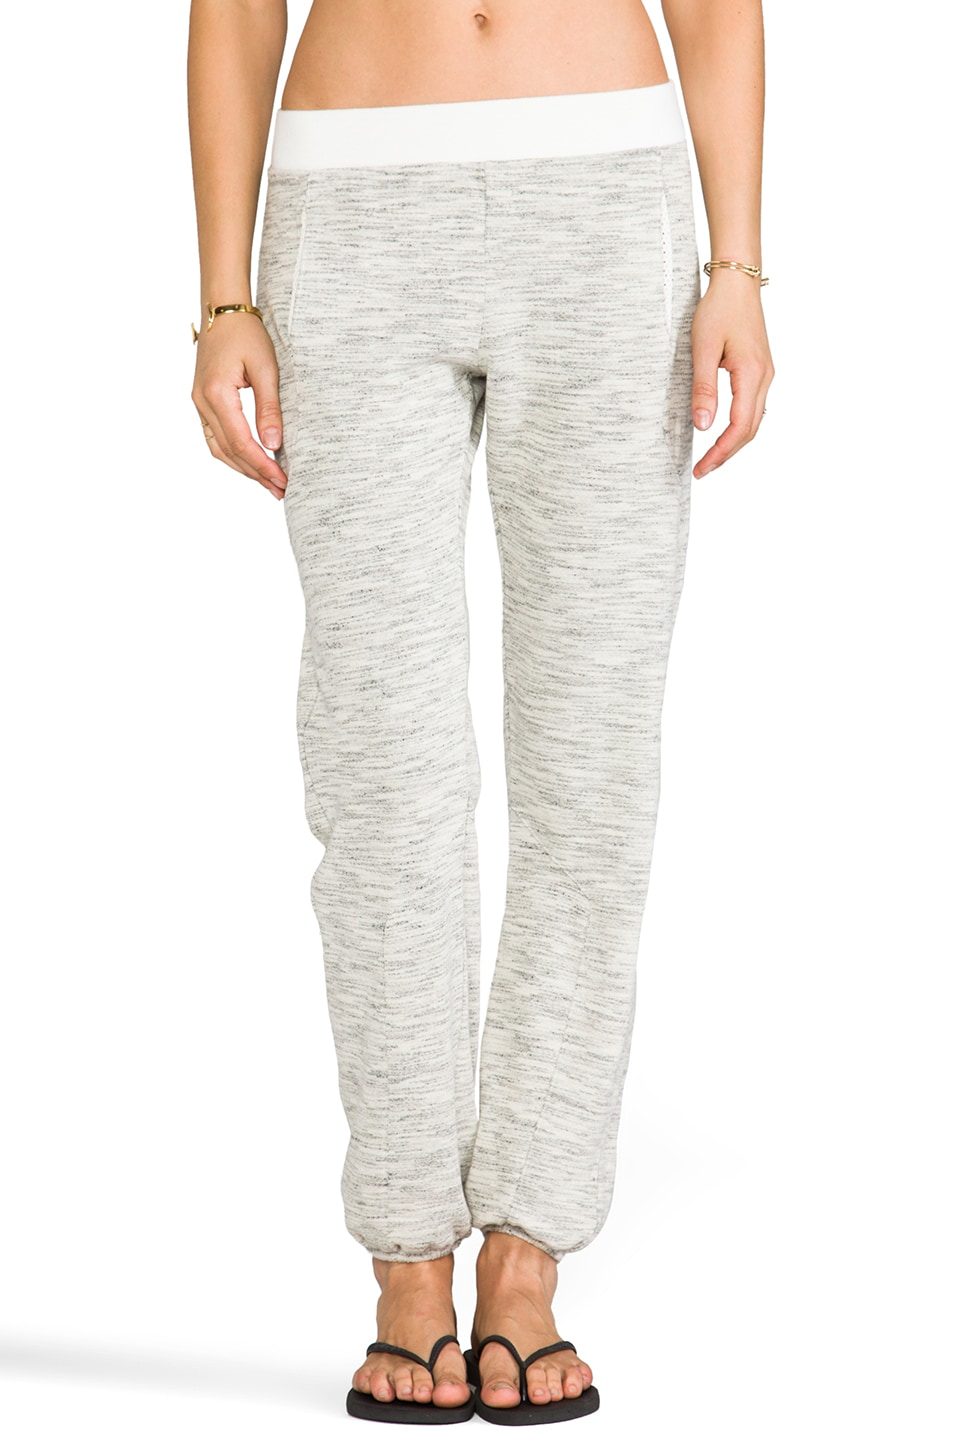 SOLOW Movie Night Fleece Old School Pant in Whisper